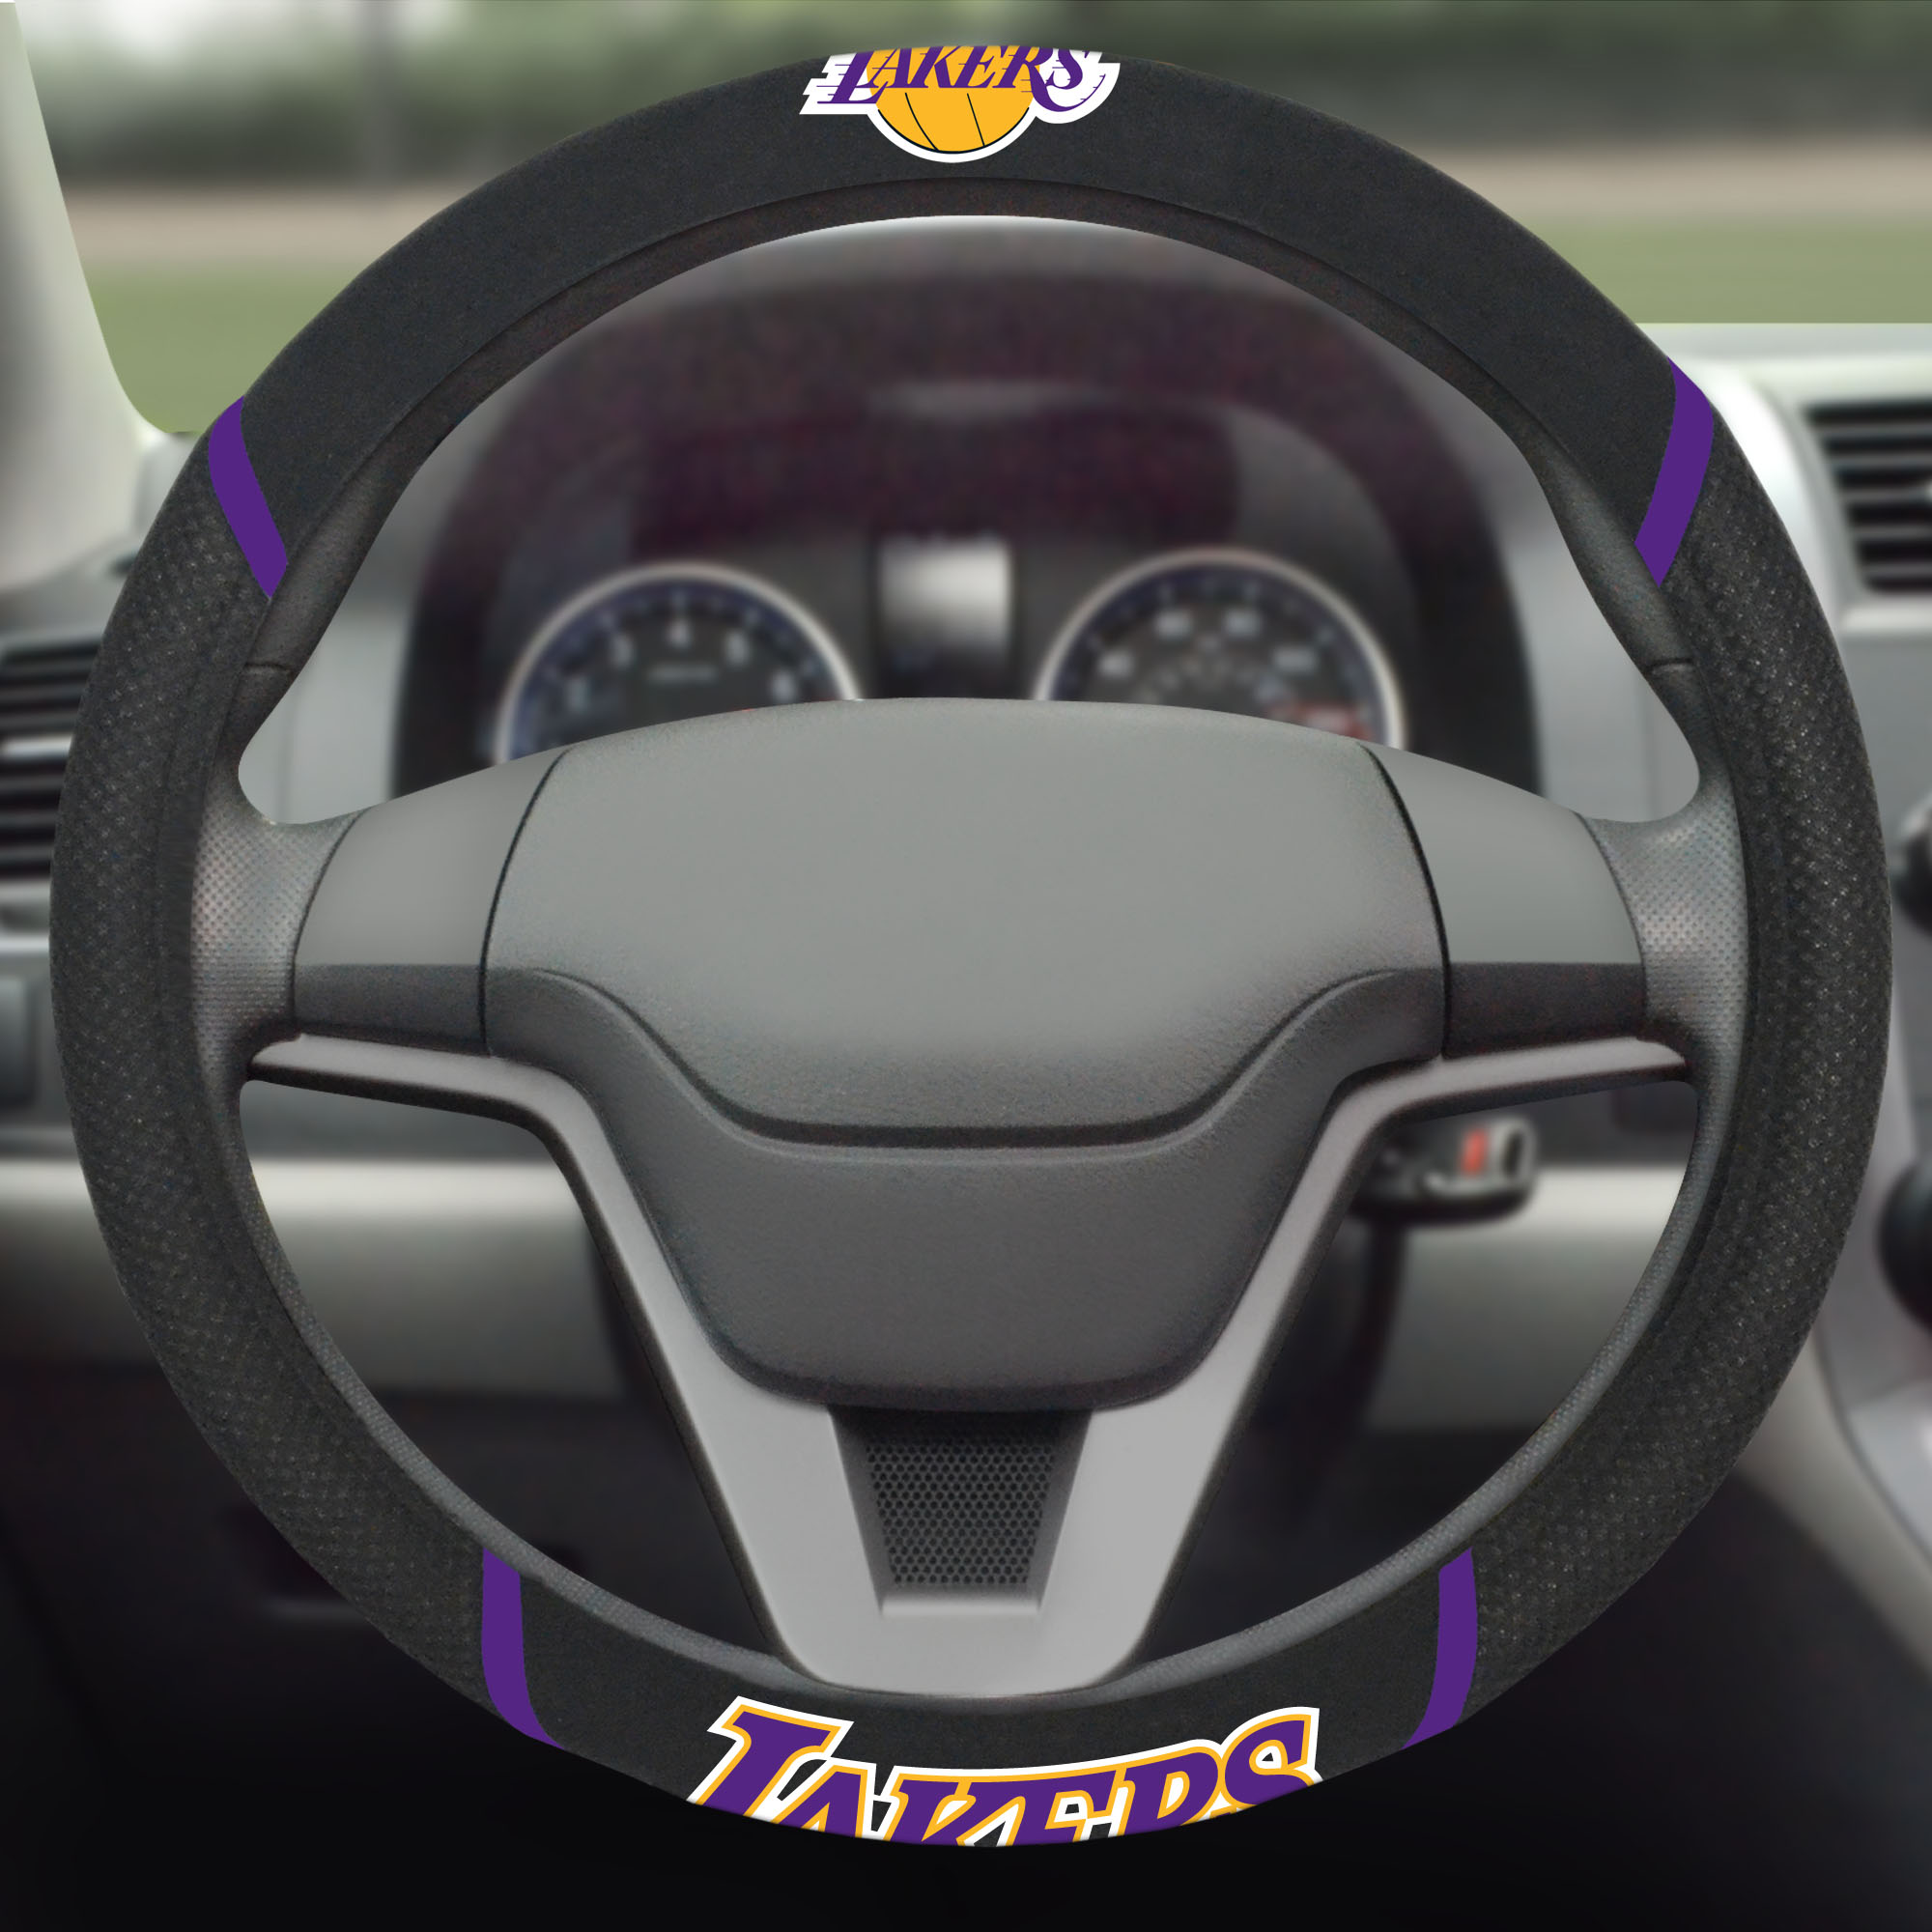 Los Angeles Lakers Steering Wheel Cover - No Size